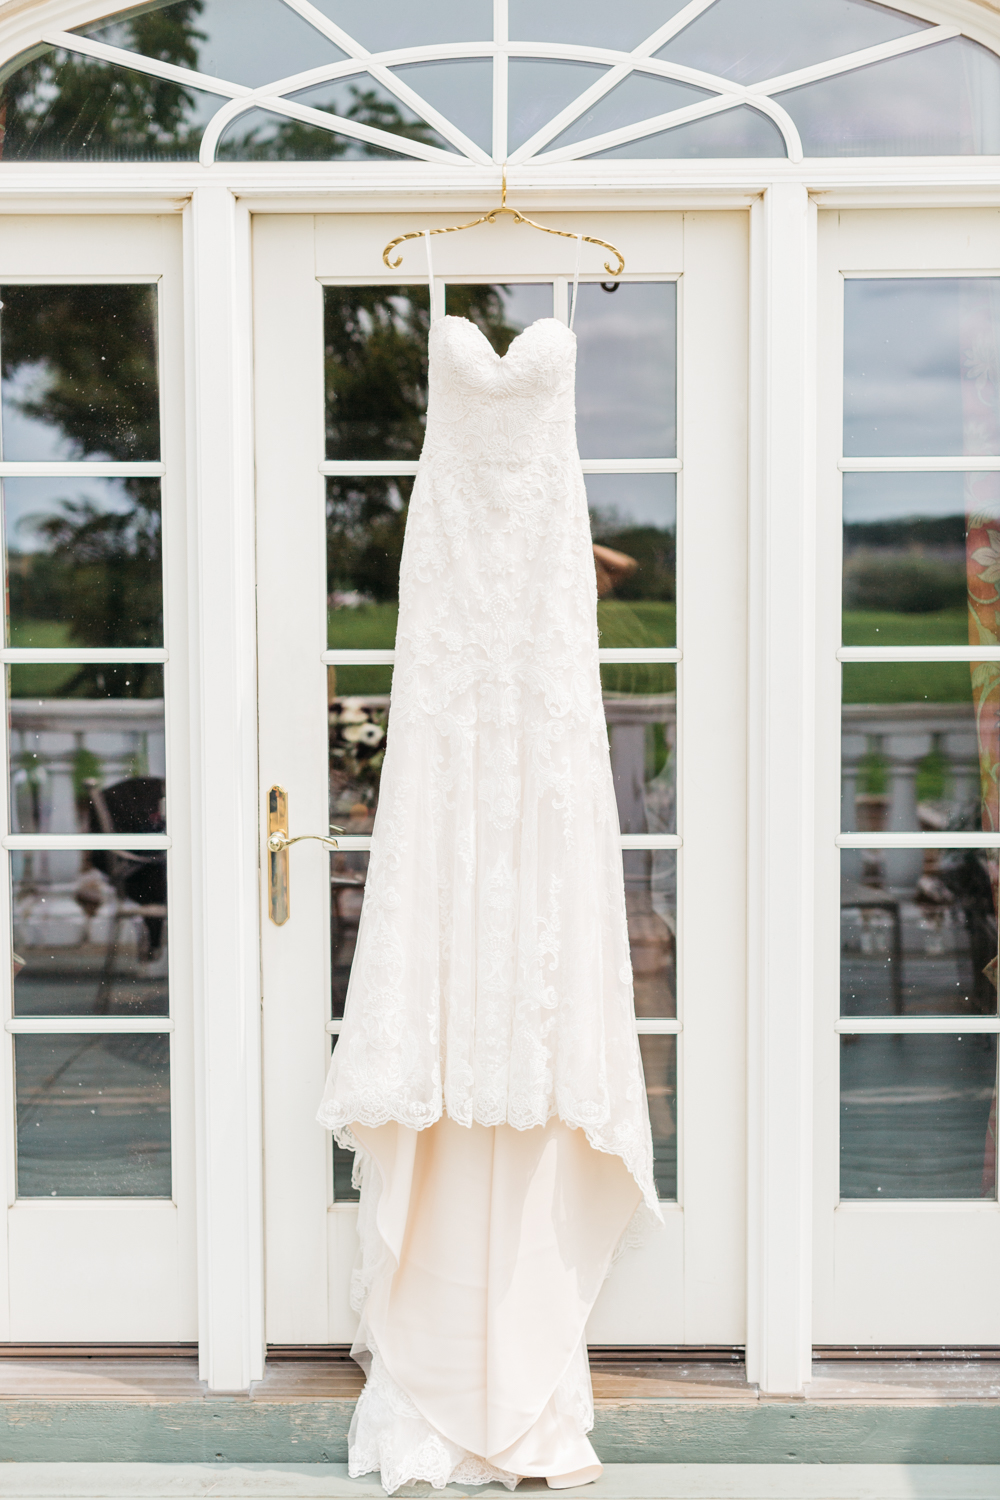 Dress hanging outside at Bride getting ready at Riverbend Inn